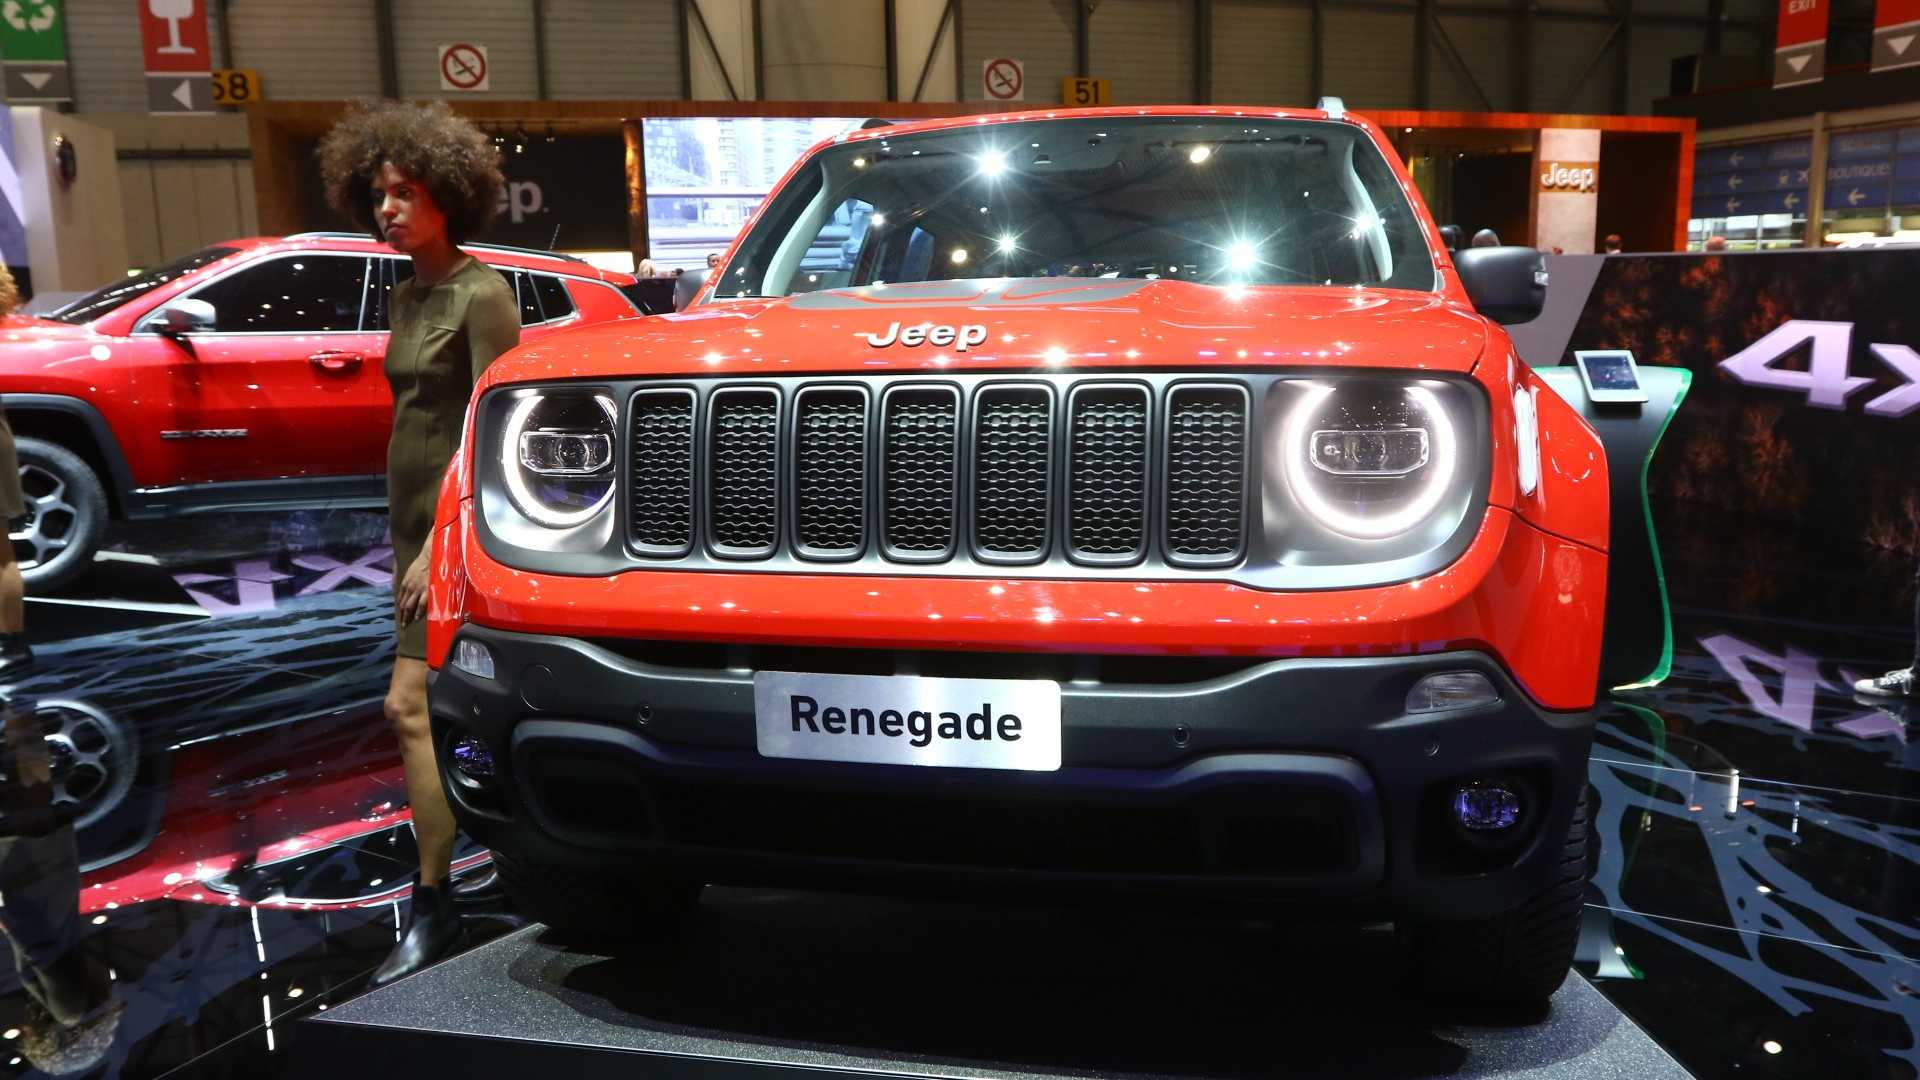 Prix Jeep Renegade >> Jeep Renegade Compass Plug In Hybrids Revealed With 240 Hp